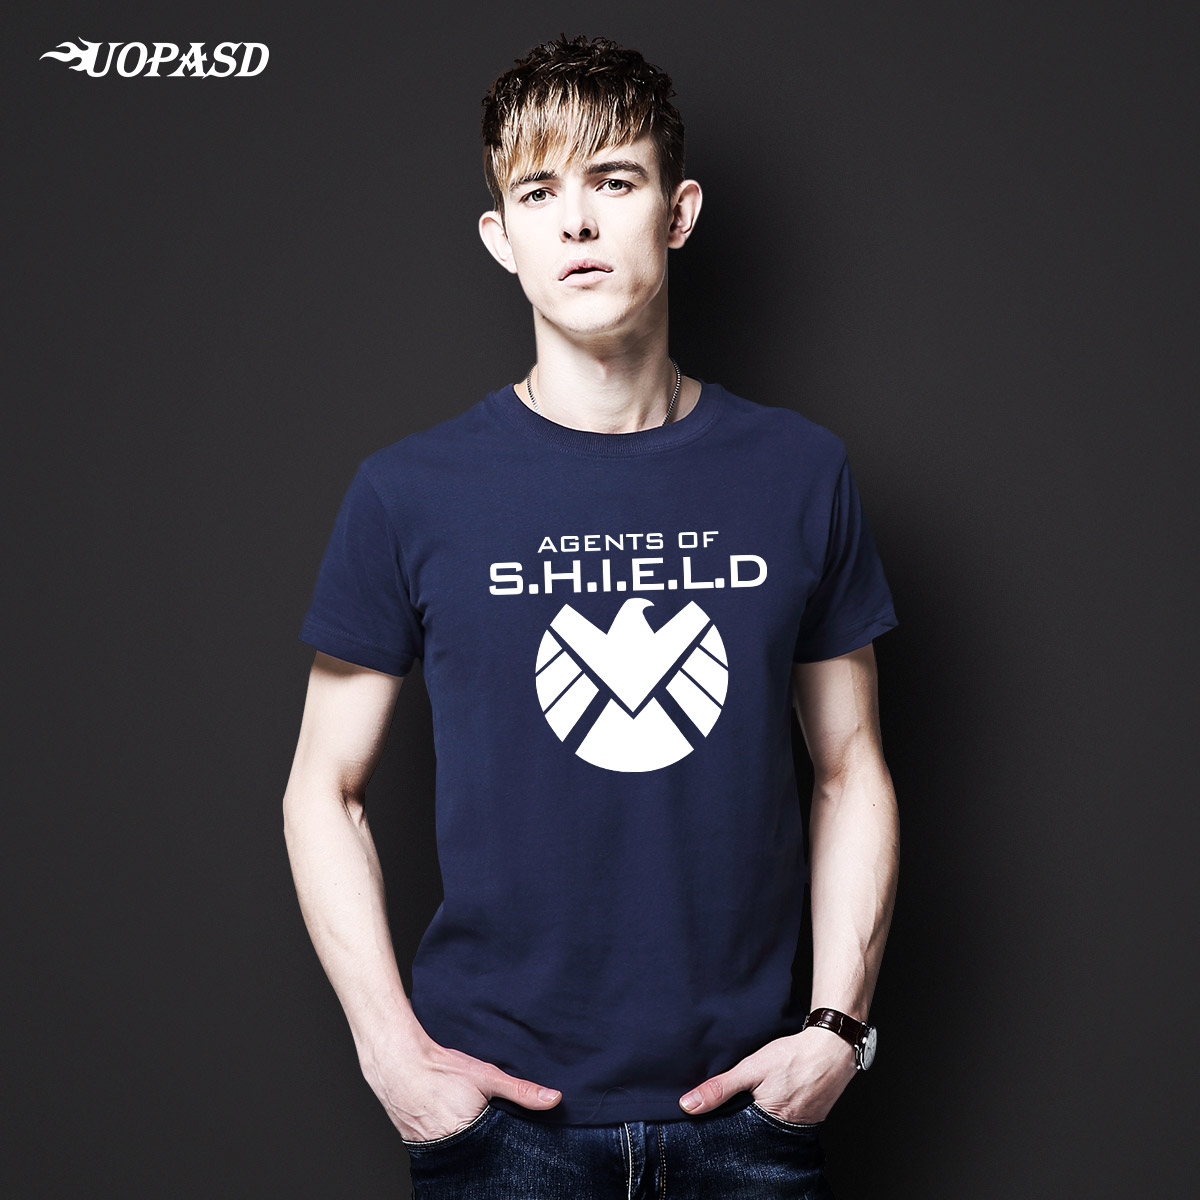 Uopasd captain america 2 s.h.i.e.l.d. agents avengers t-shirt shield simple cotton short sleeve tide male